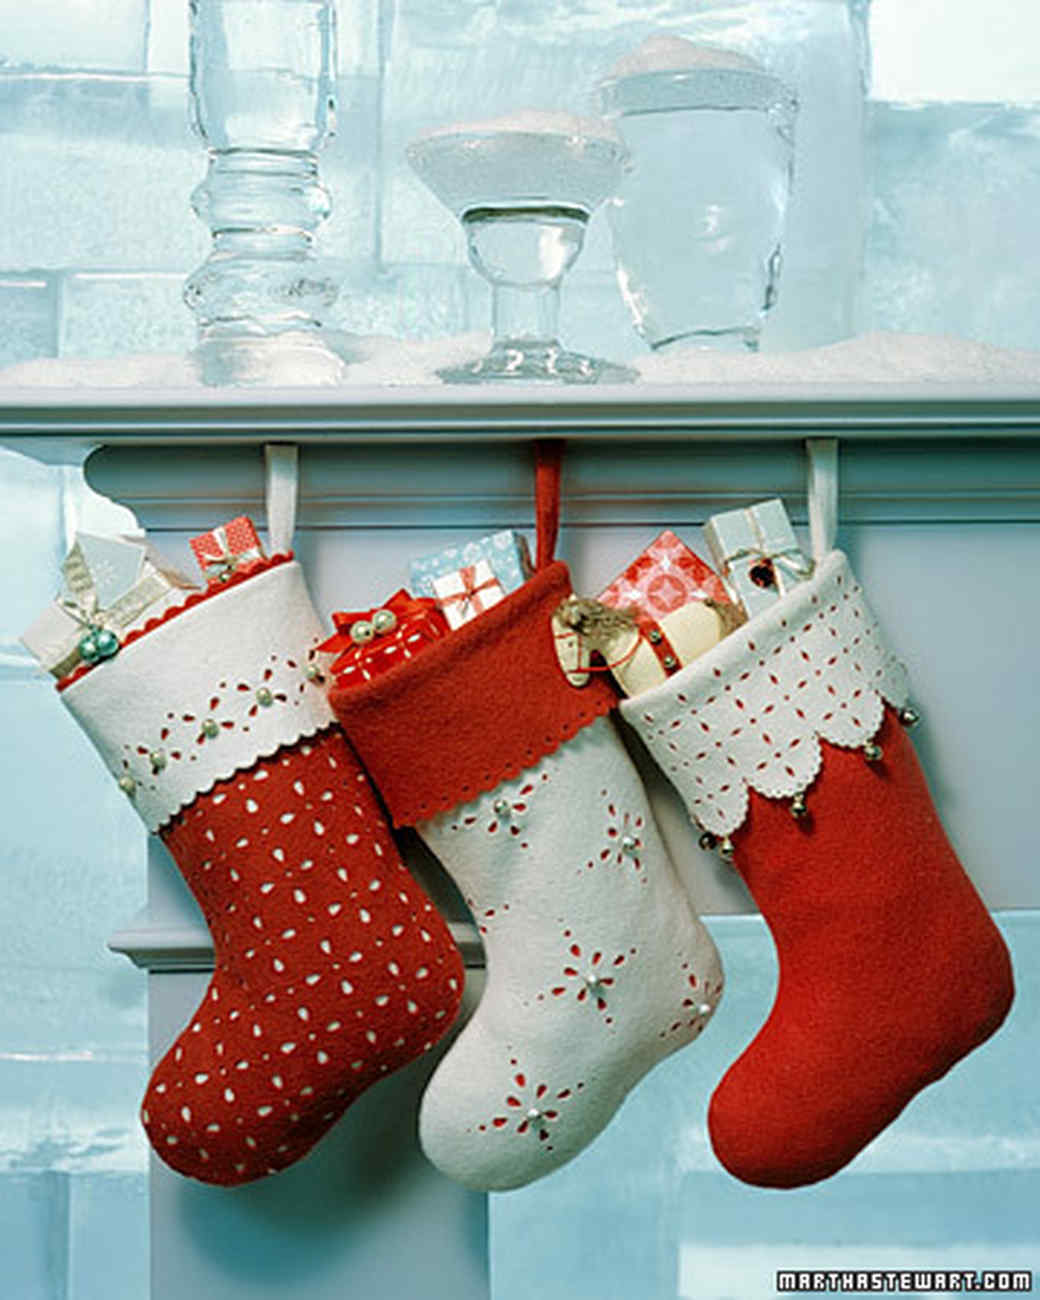 handmade christmas stockings martha stewart - Decorating Christmas Stockings